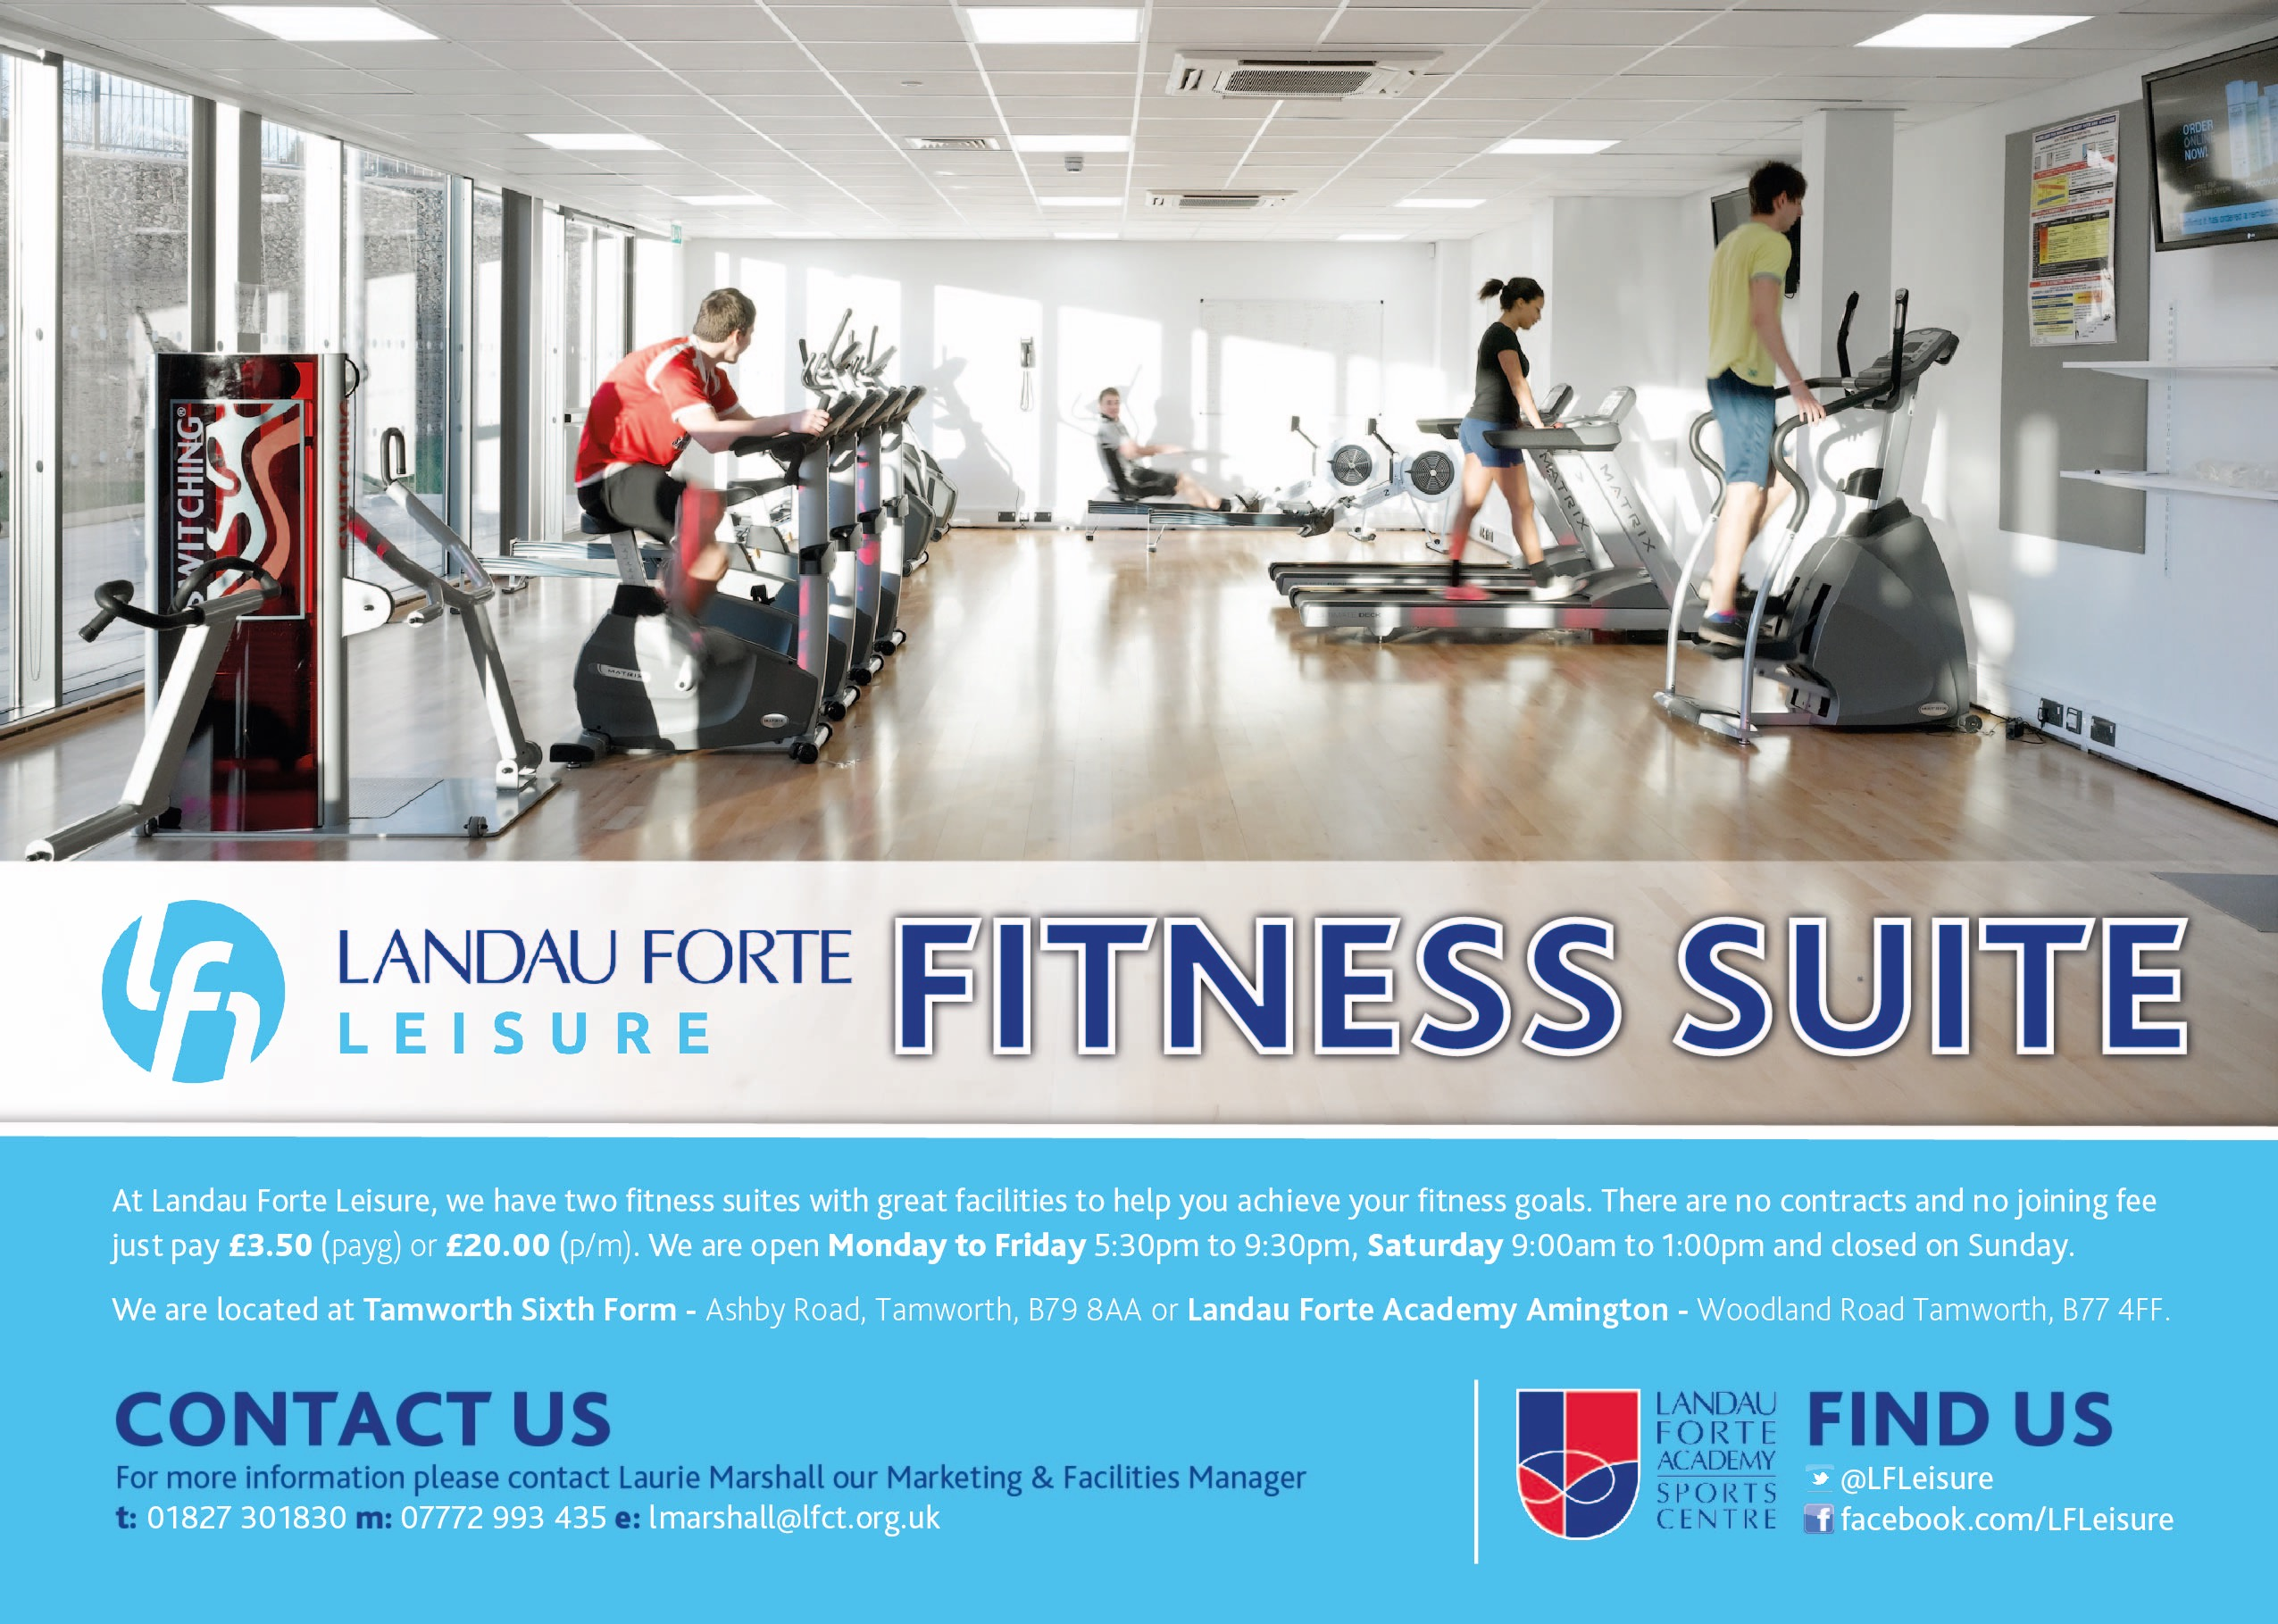 Fitness suite pool hire tamworth sixth form